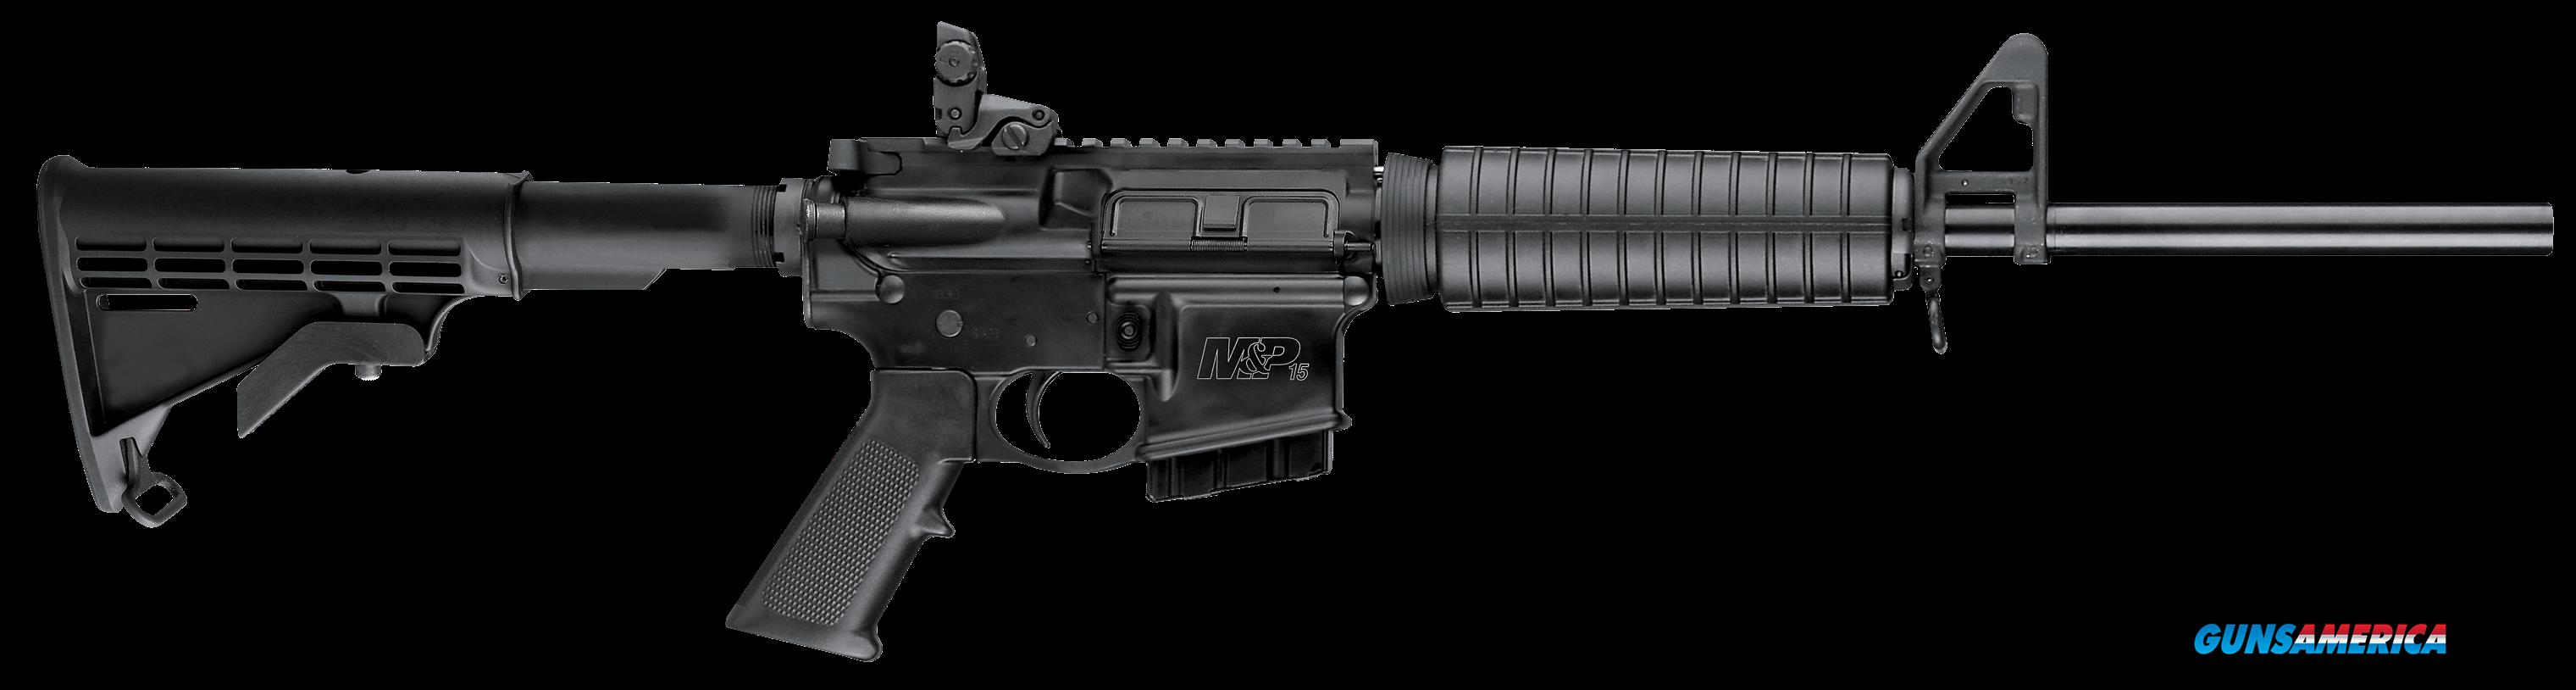 "Smith & Wesson 10203 M&P15 Sport II *MA/NJ Compliant* Semi-Automatic 223 Rem/5.56 NATO 16"" 10+1  Guns > Rifles > S Misc Rifles"